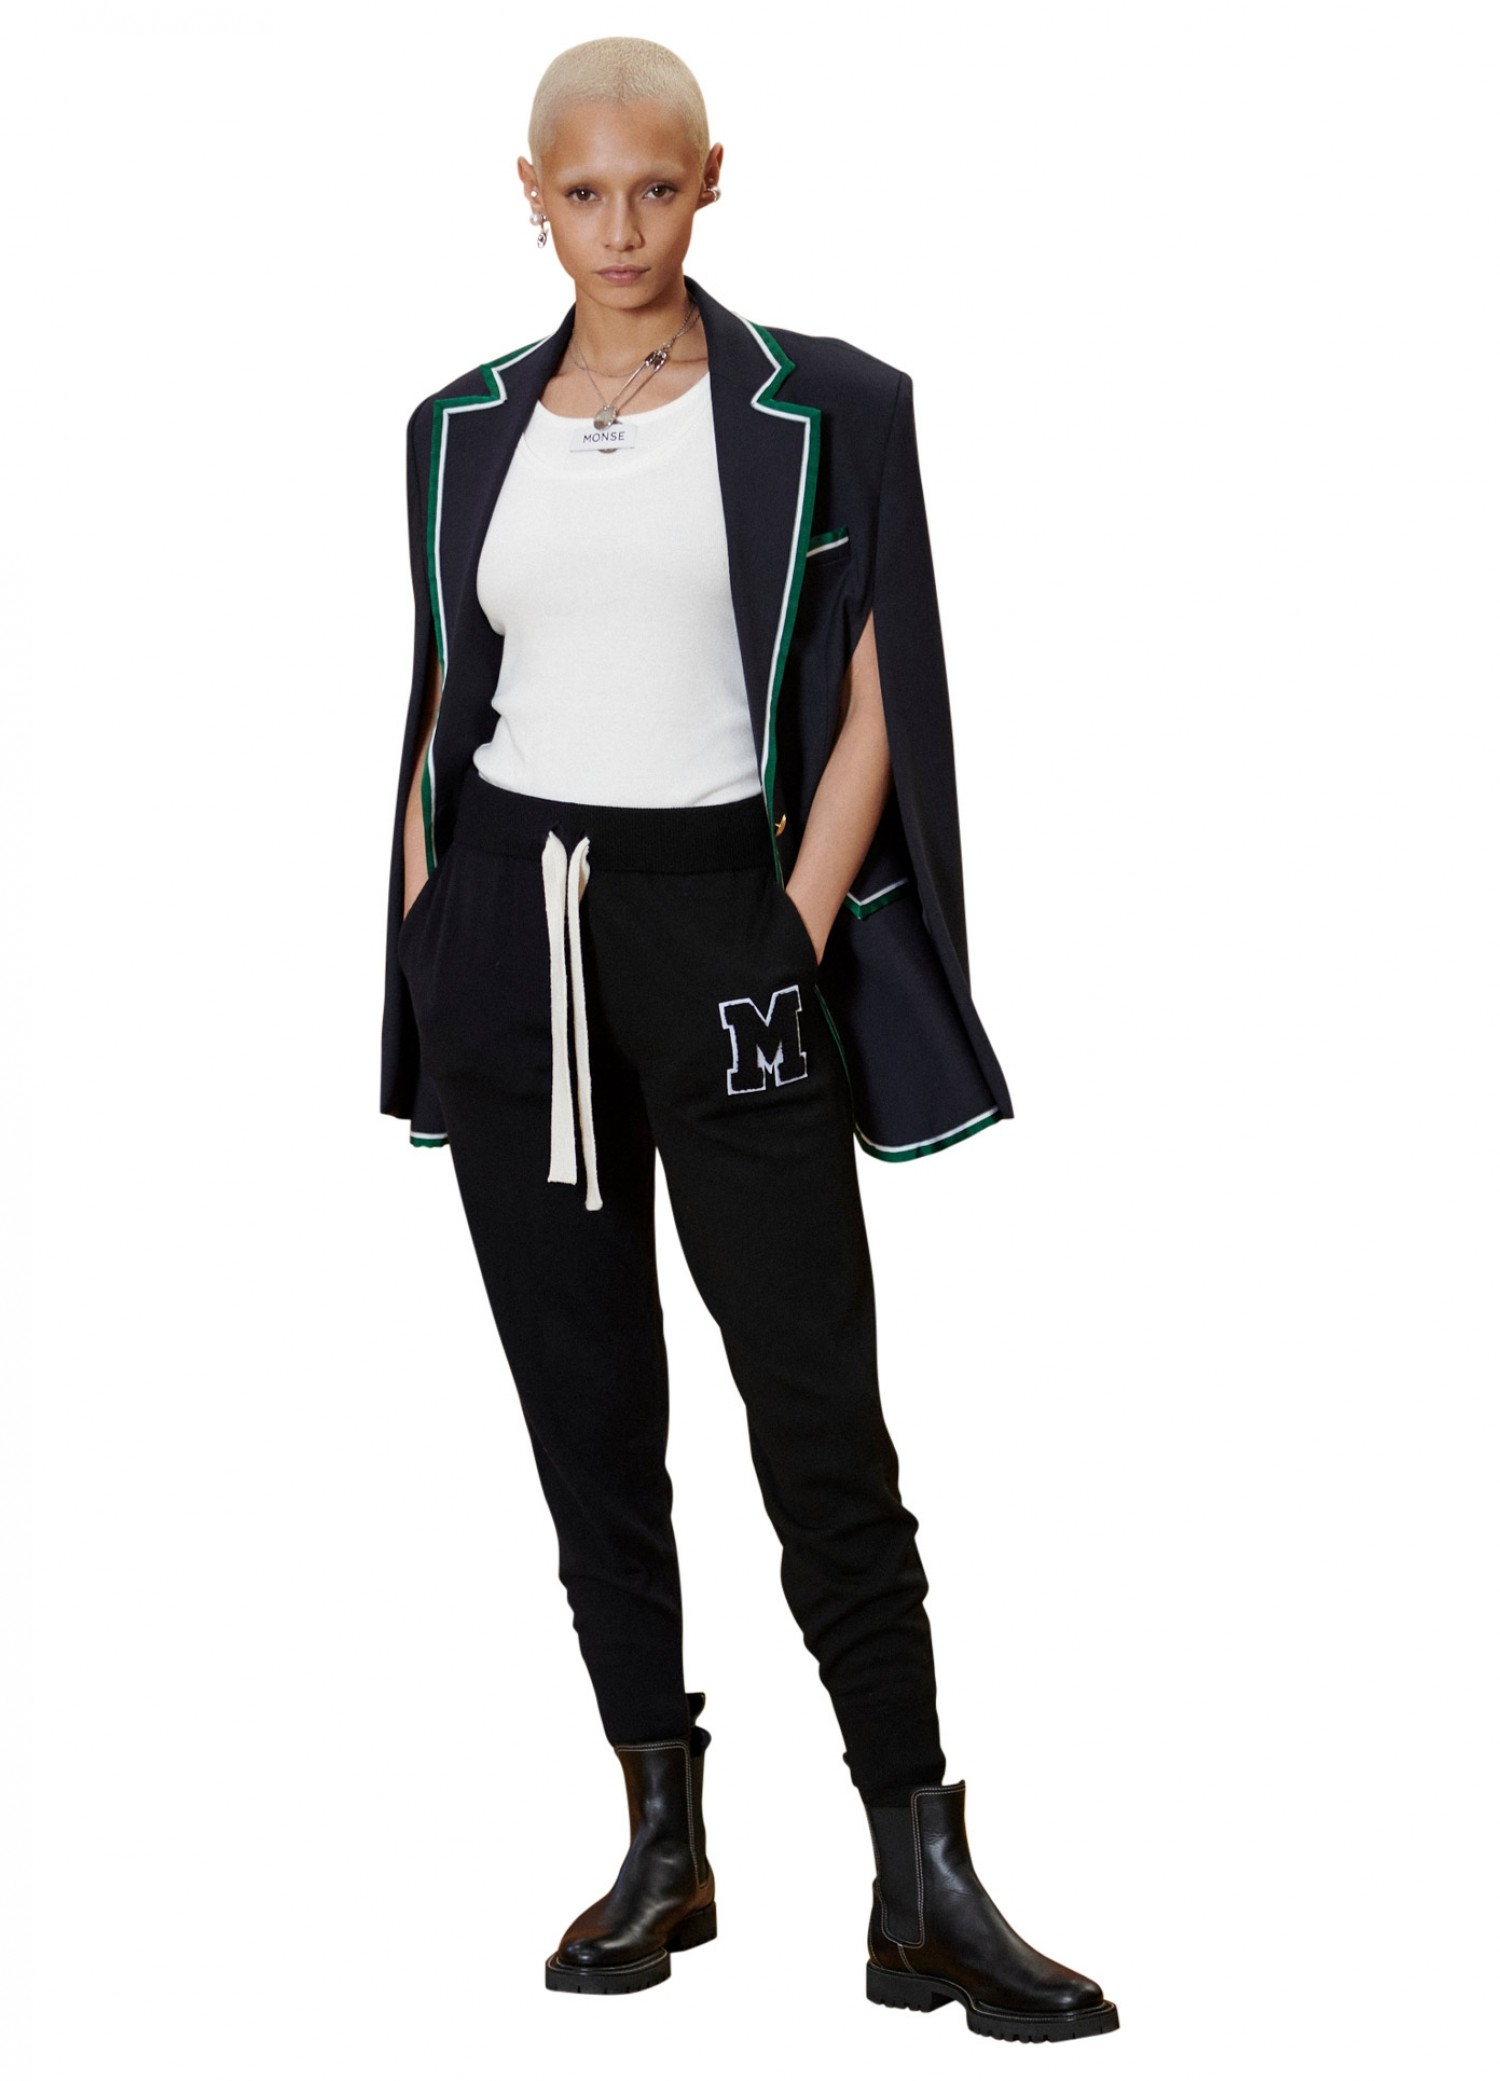 MONSE Knit Jogger in Midnight on Model Front View with Cape Blazer